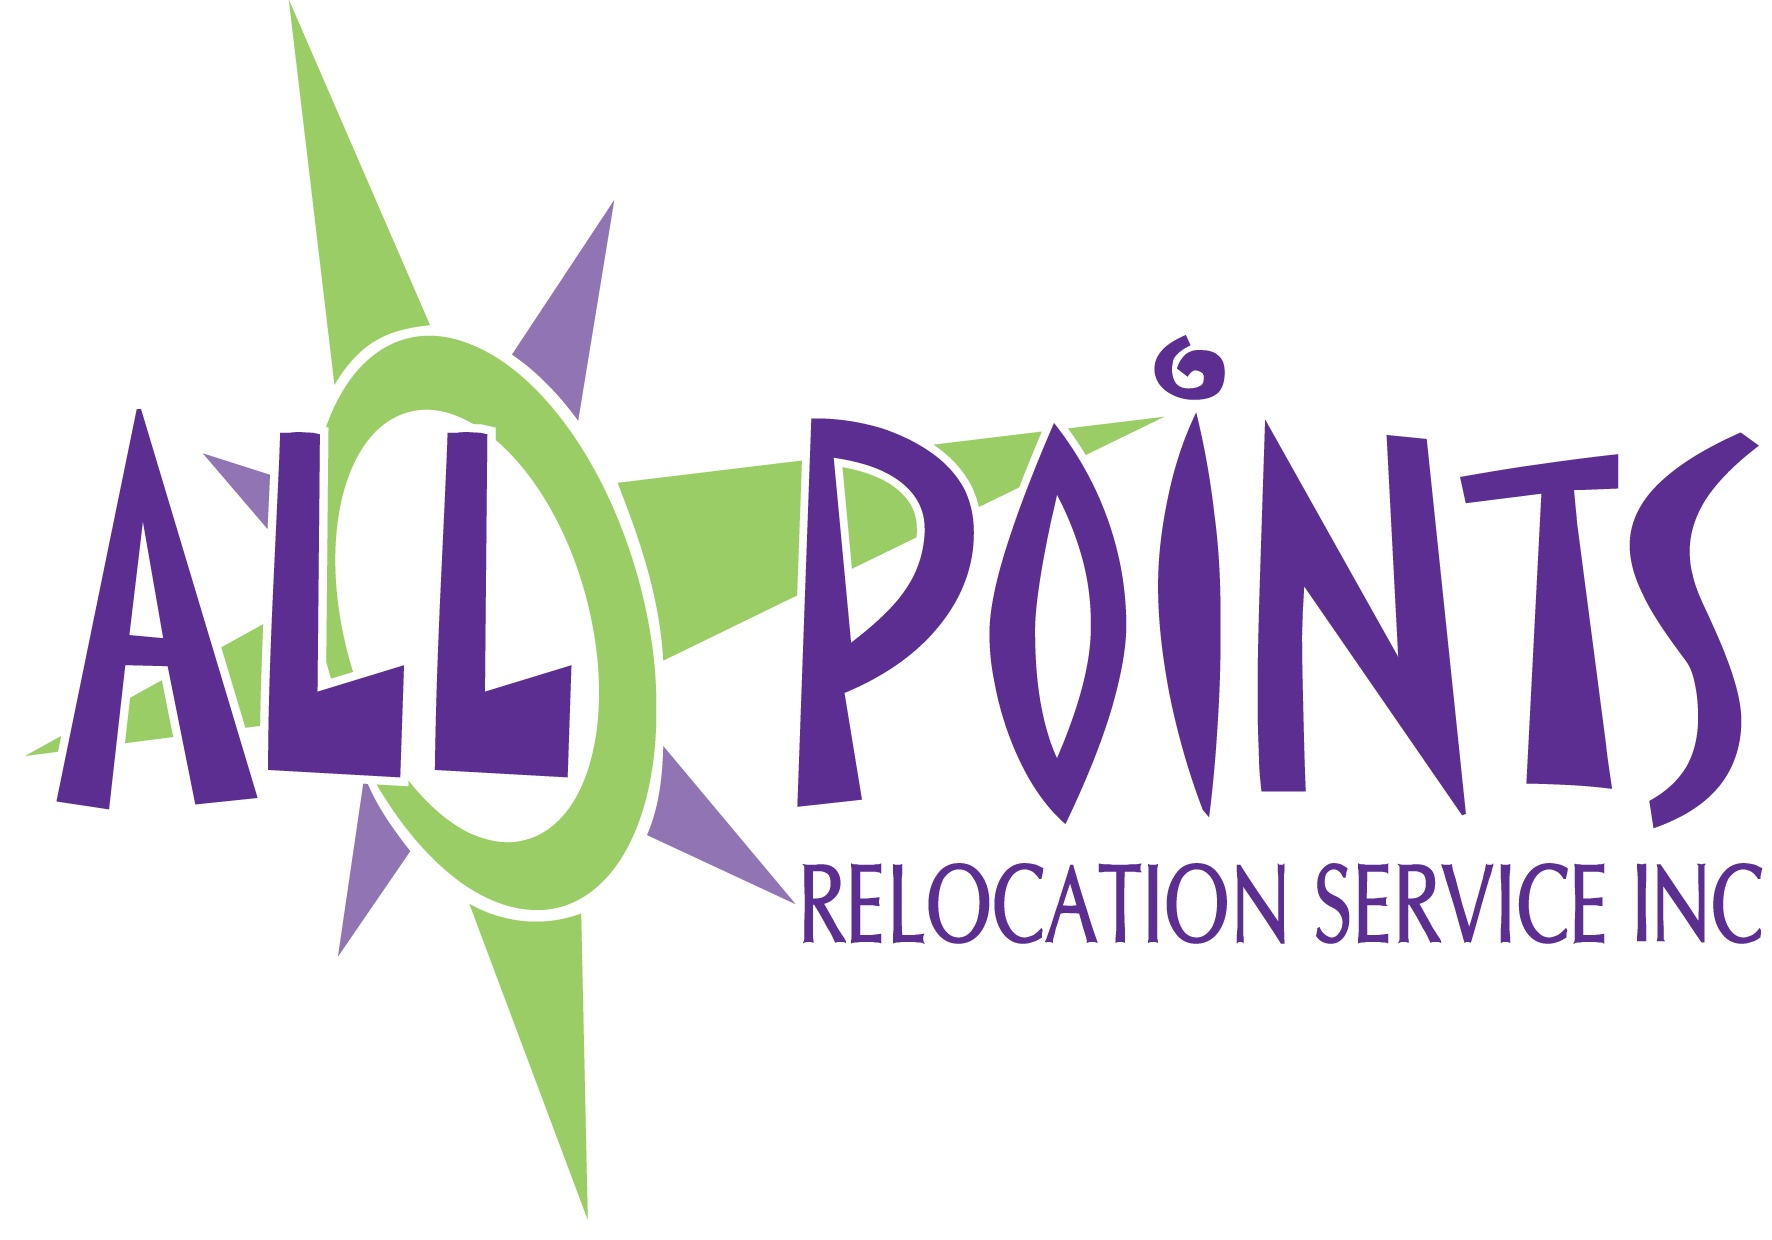 Allpoints Relocation Service Inc.